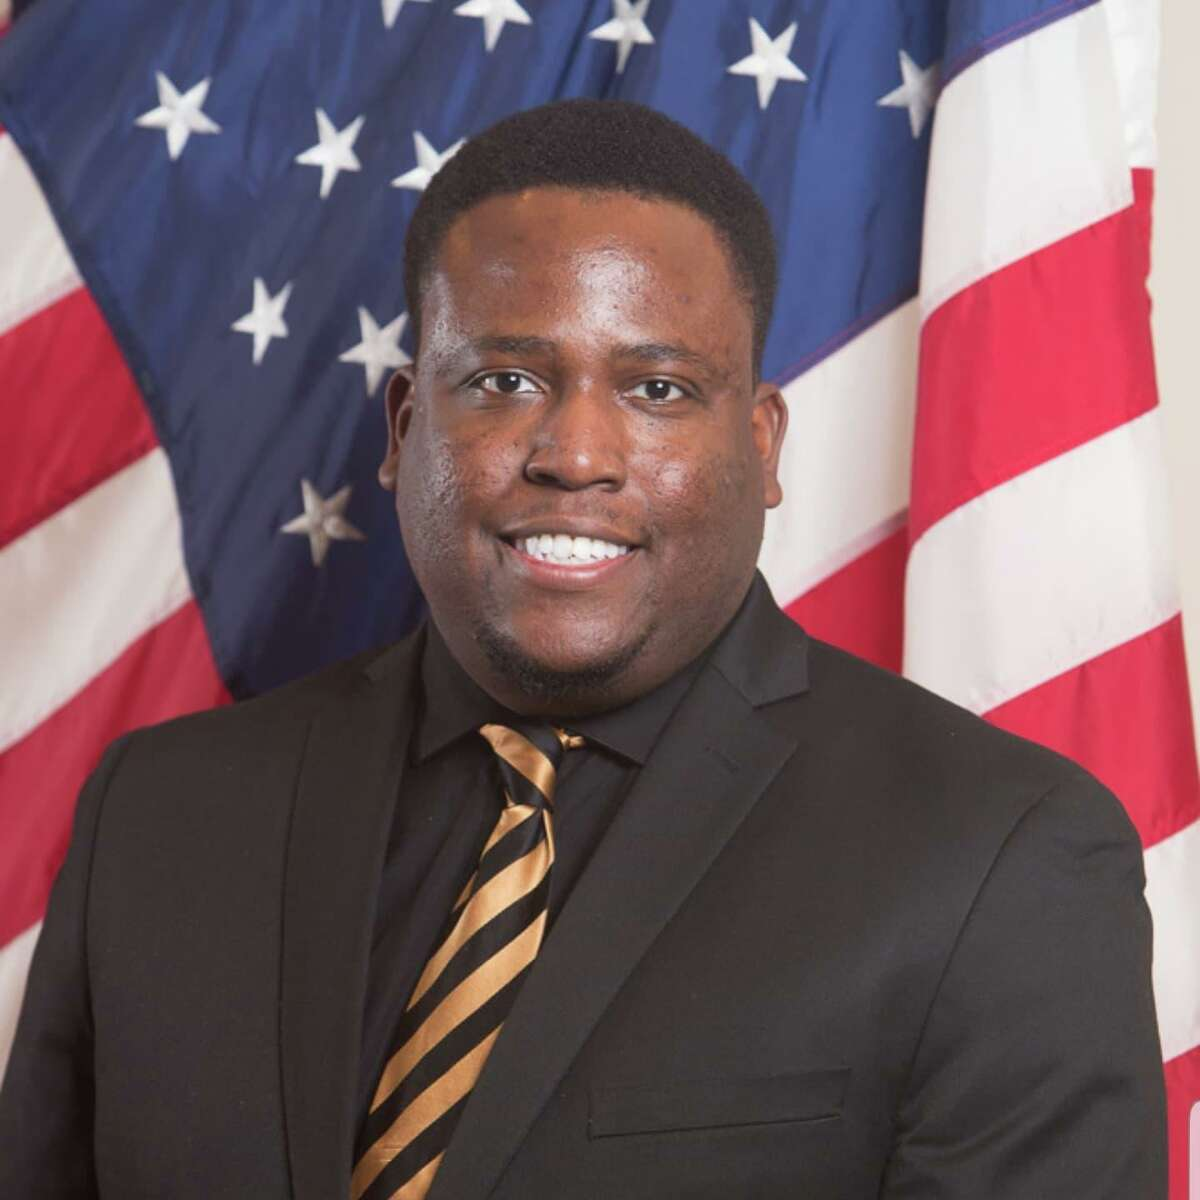 New Haven's 26th Ward Alder Darryl Brackeen, Jr. was named Regional State Director for the Young Elected Officials Network in the Northeast.